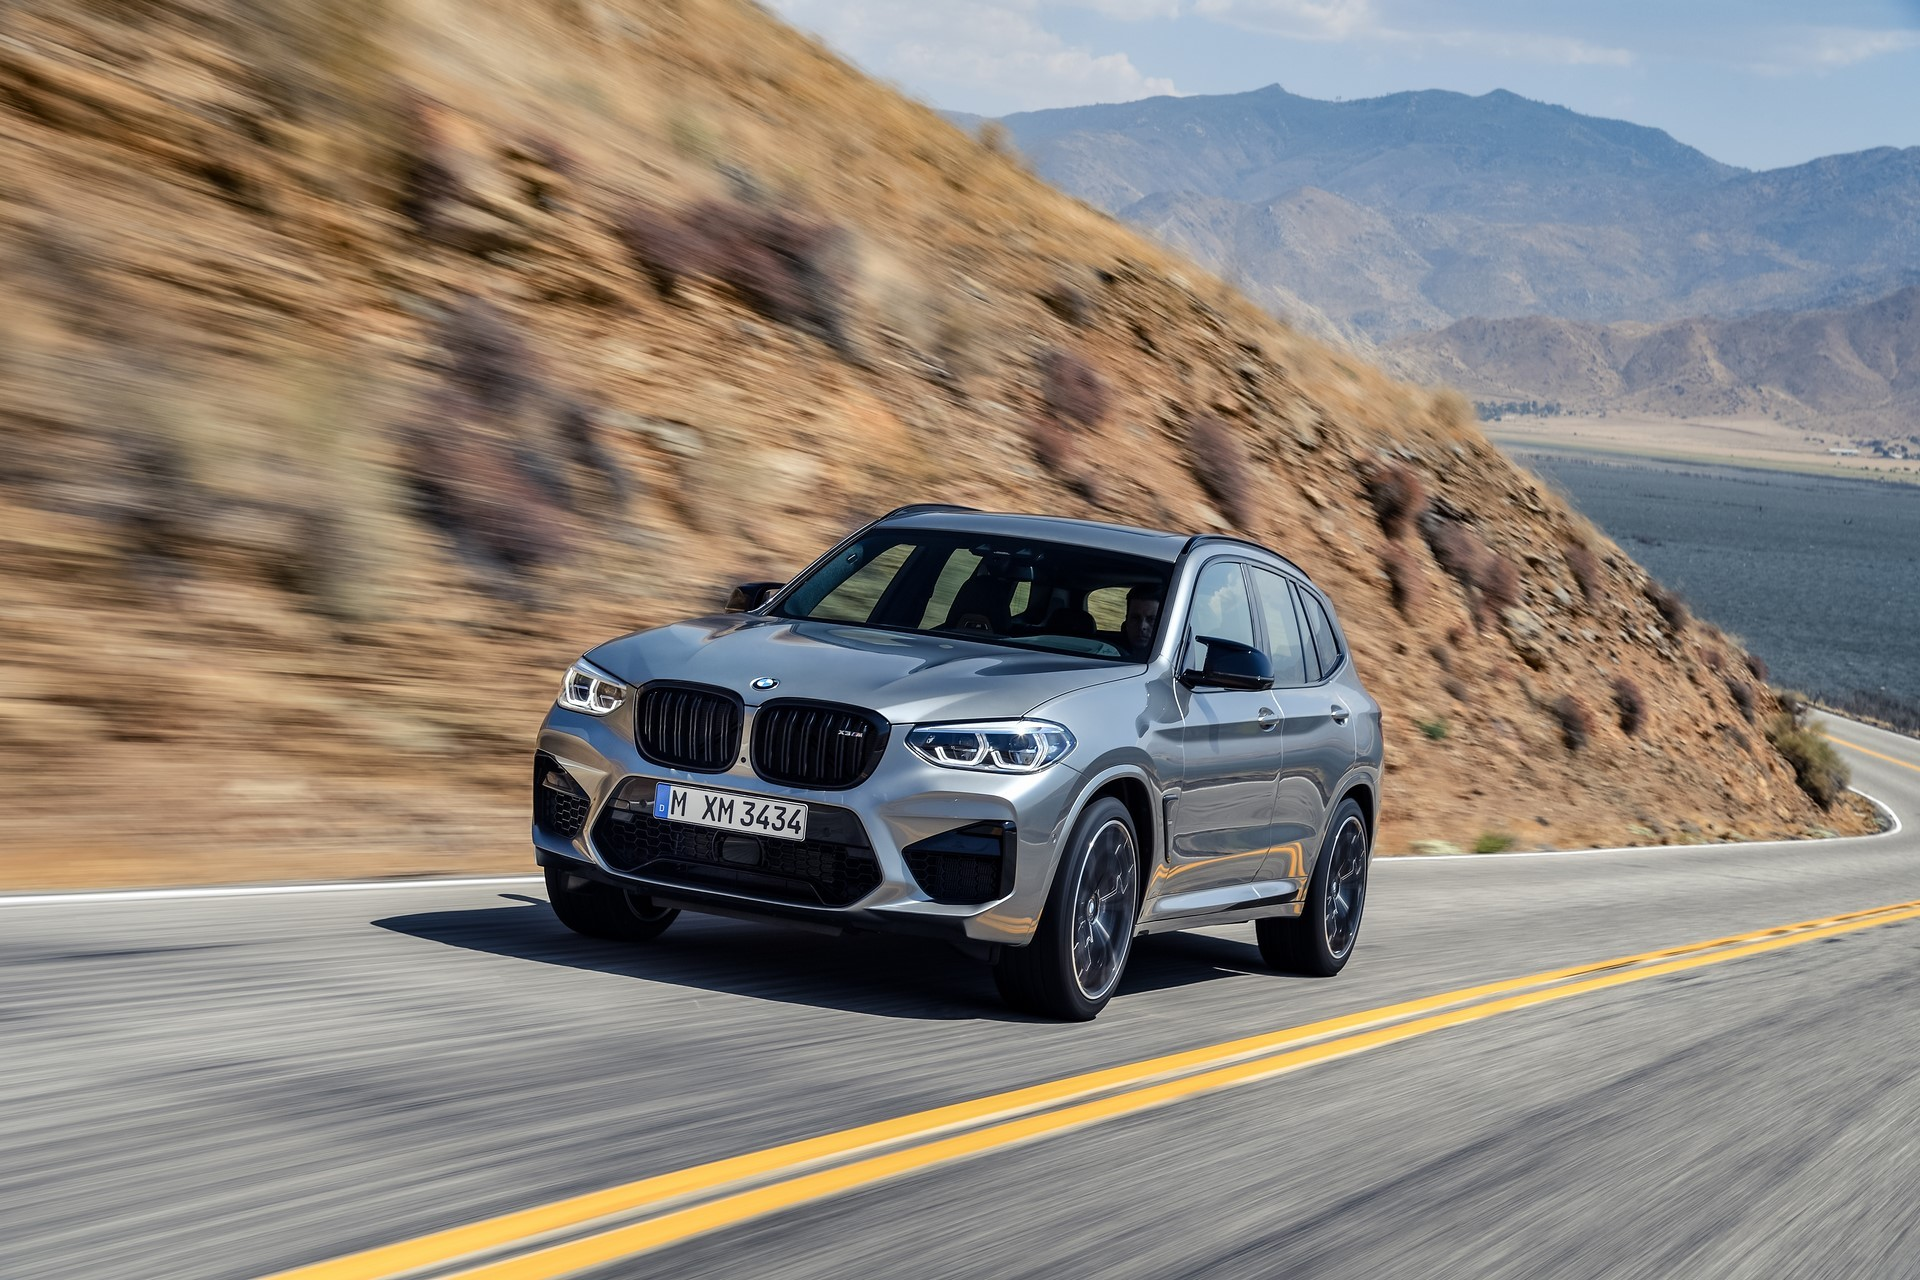 BMW X3 M and X4 M 2019 (25)